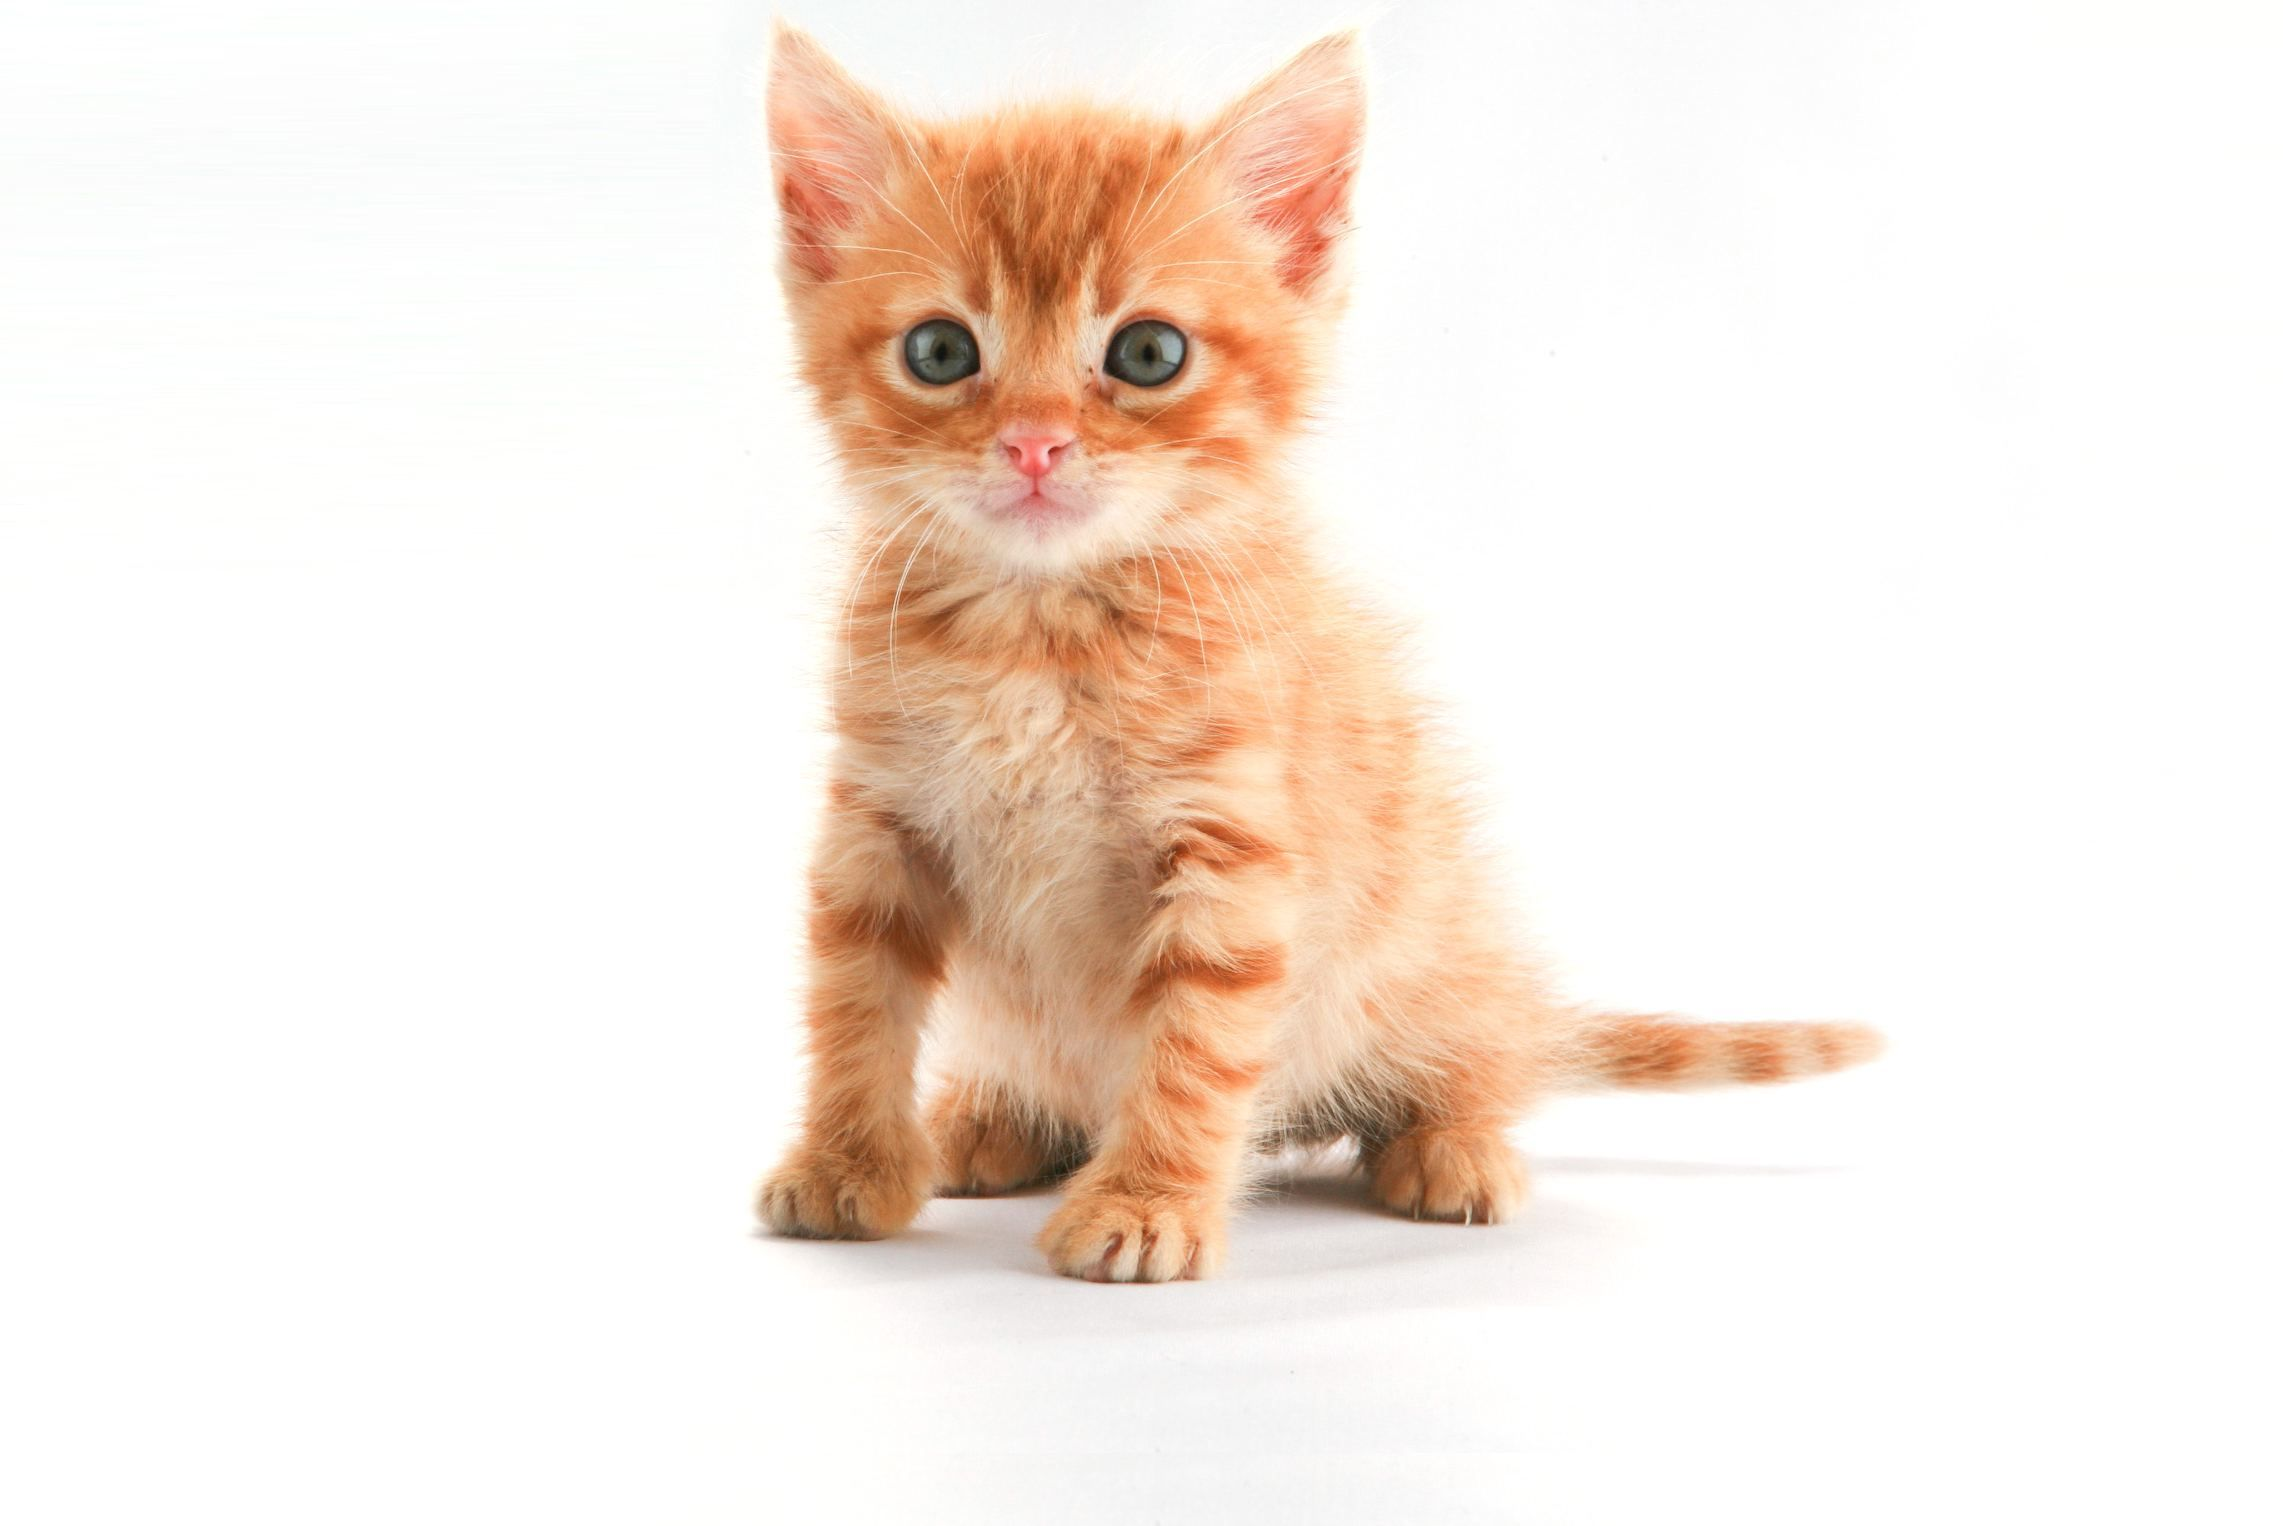 And I would have this kitten and name it Gingersnap Gingersnap